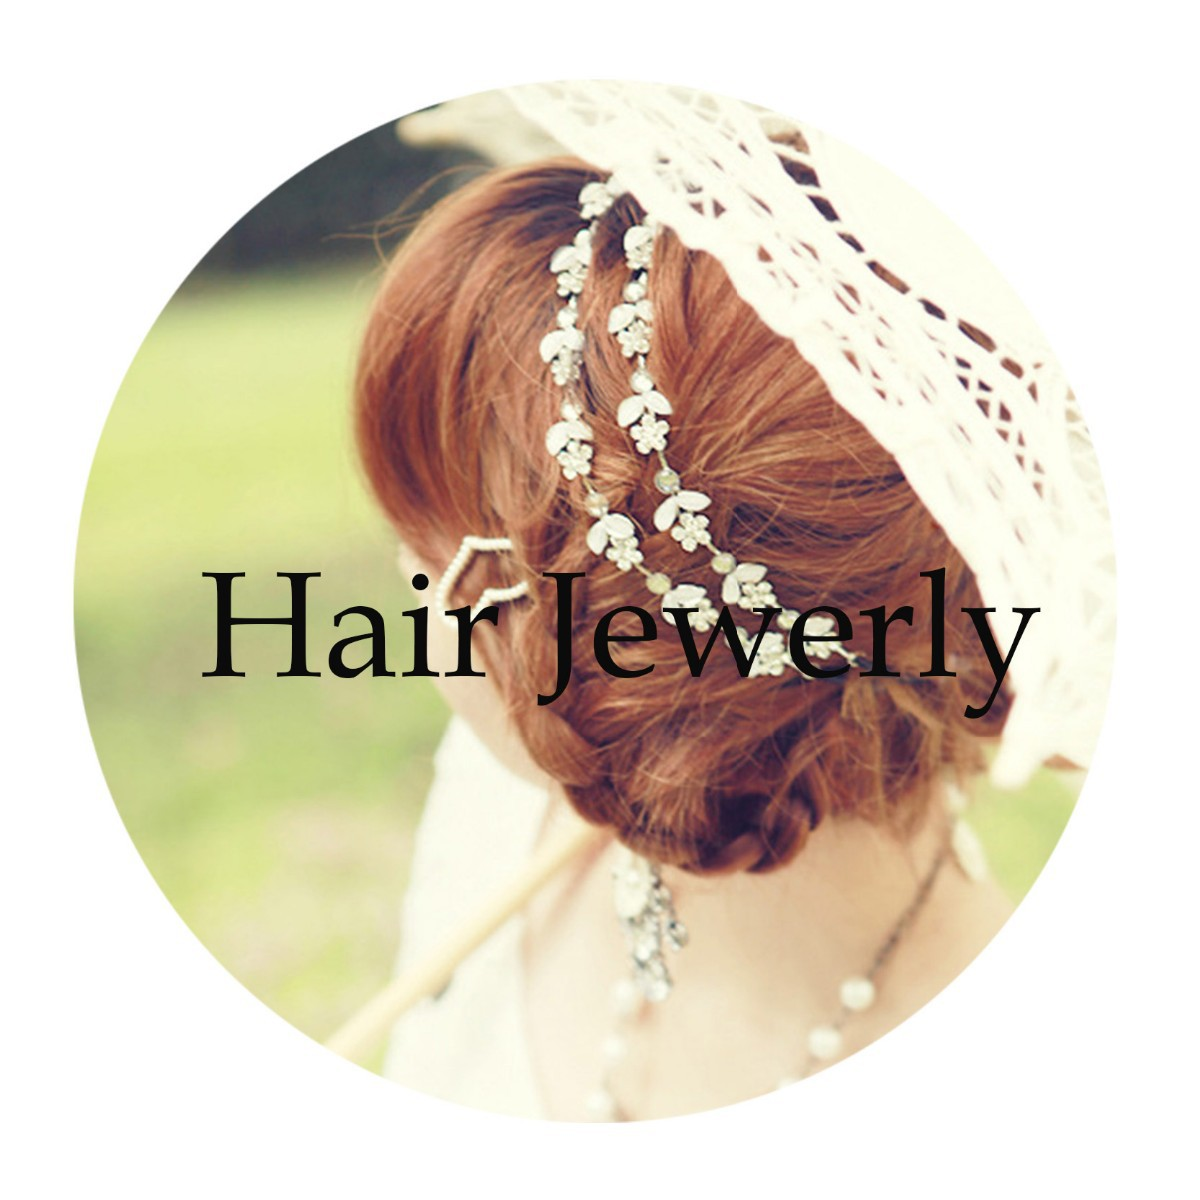 2-Hair Jewerly